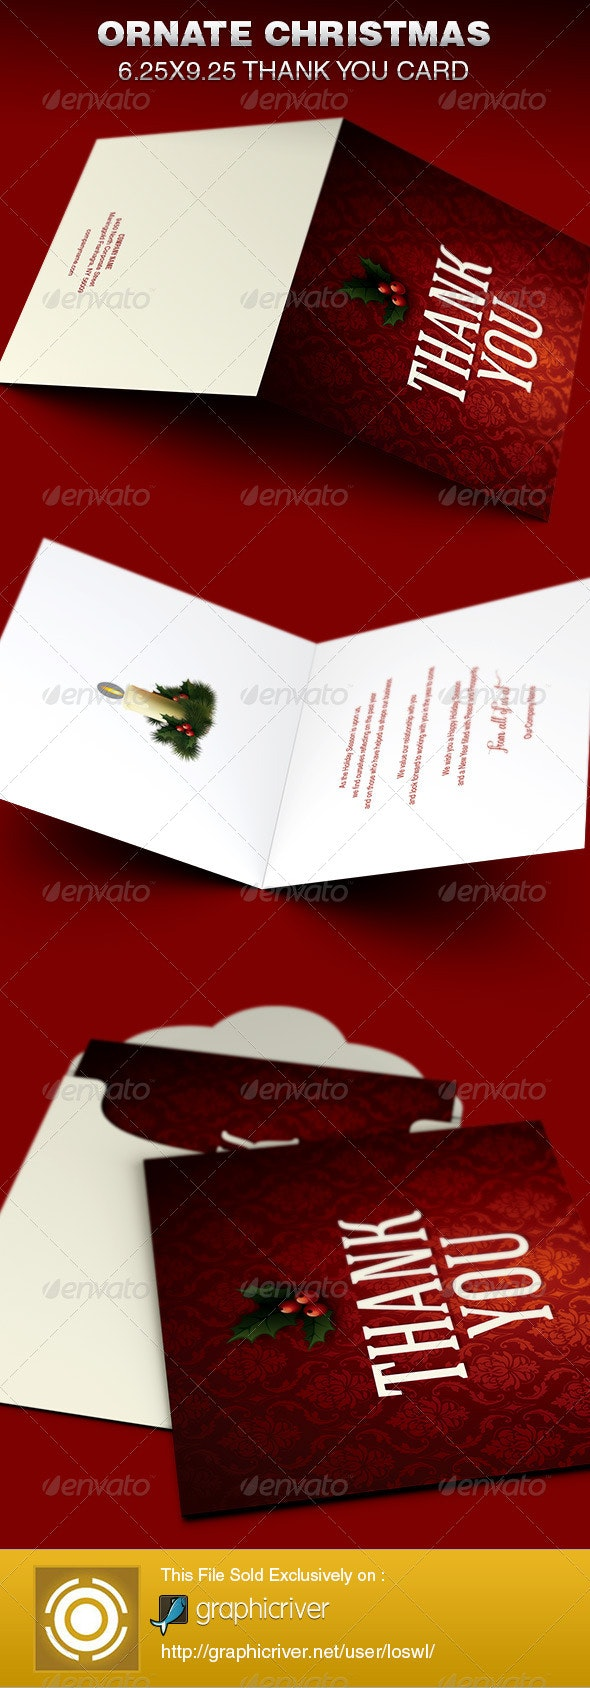 Ornate Christmas Thank You Card Template - Greeting Cards Cards & Invites